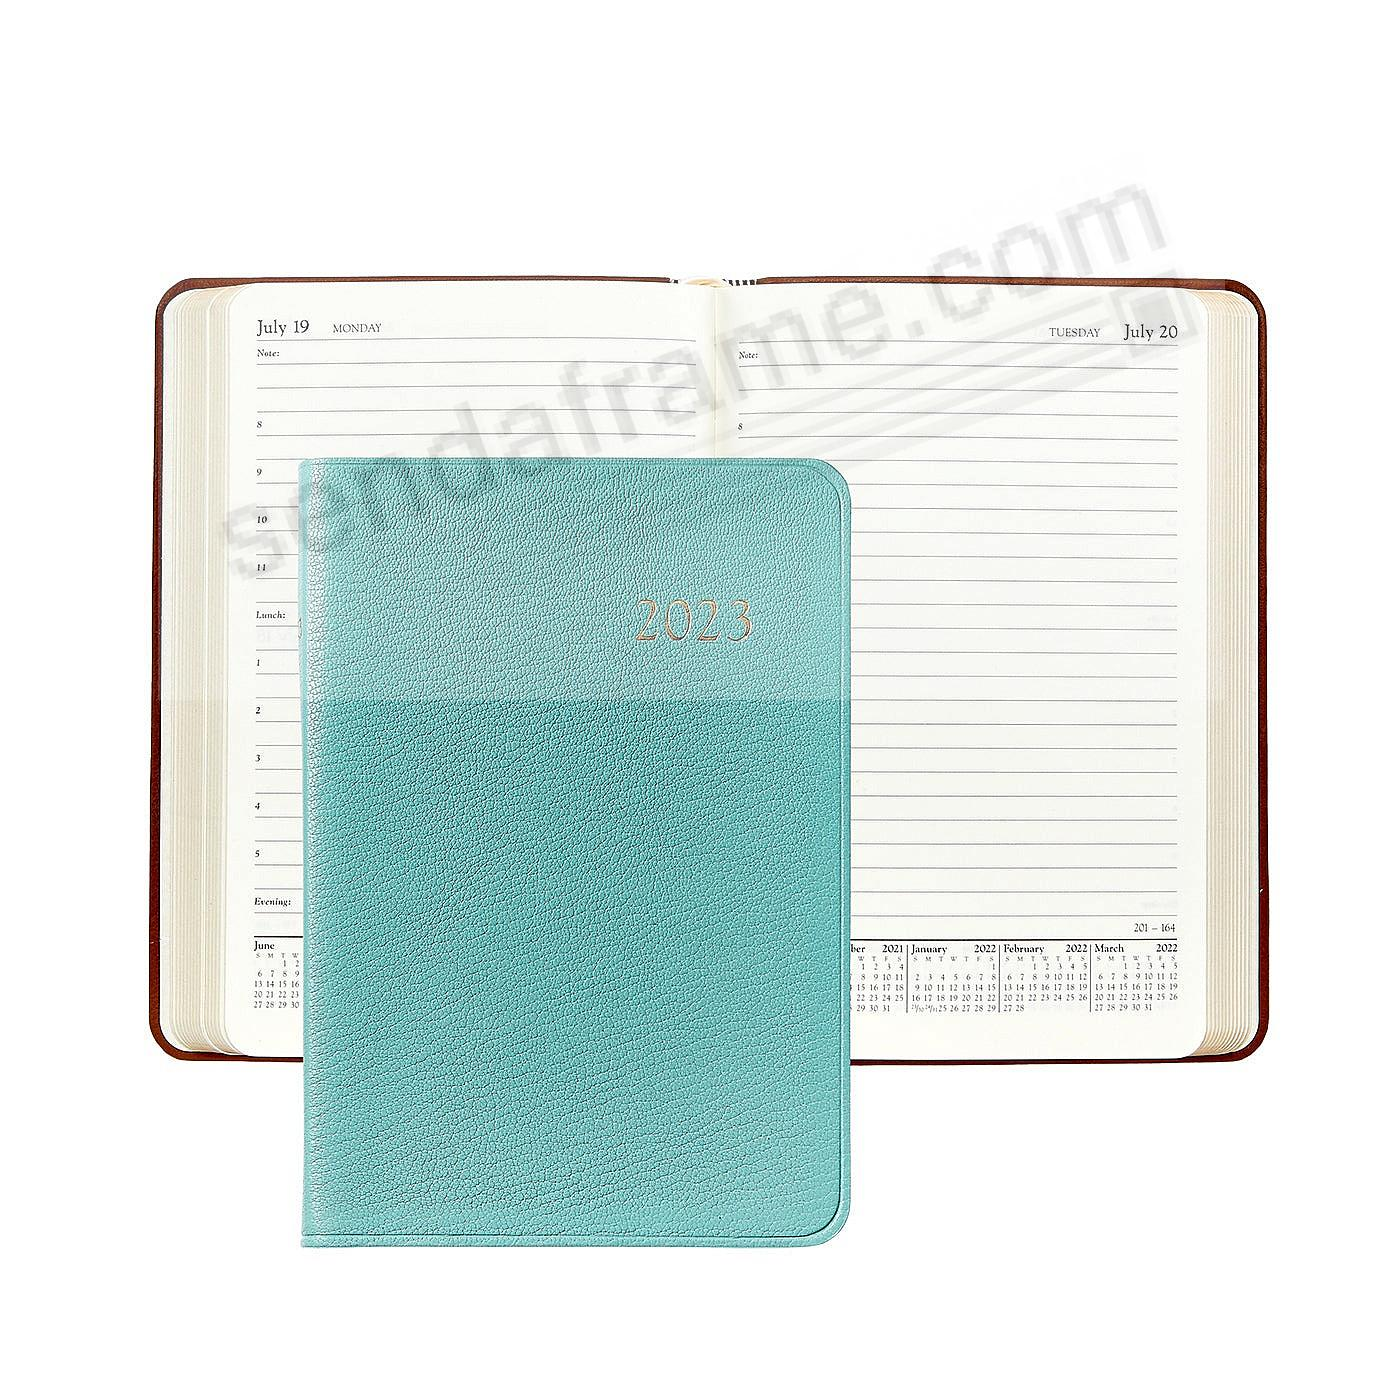 2019 ROBINS-EGG BLUE Goatskin leather Daily 8in Journal by Graphic Image™